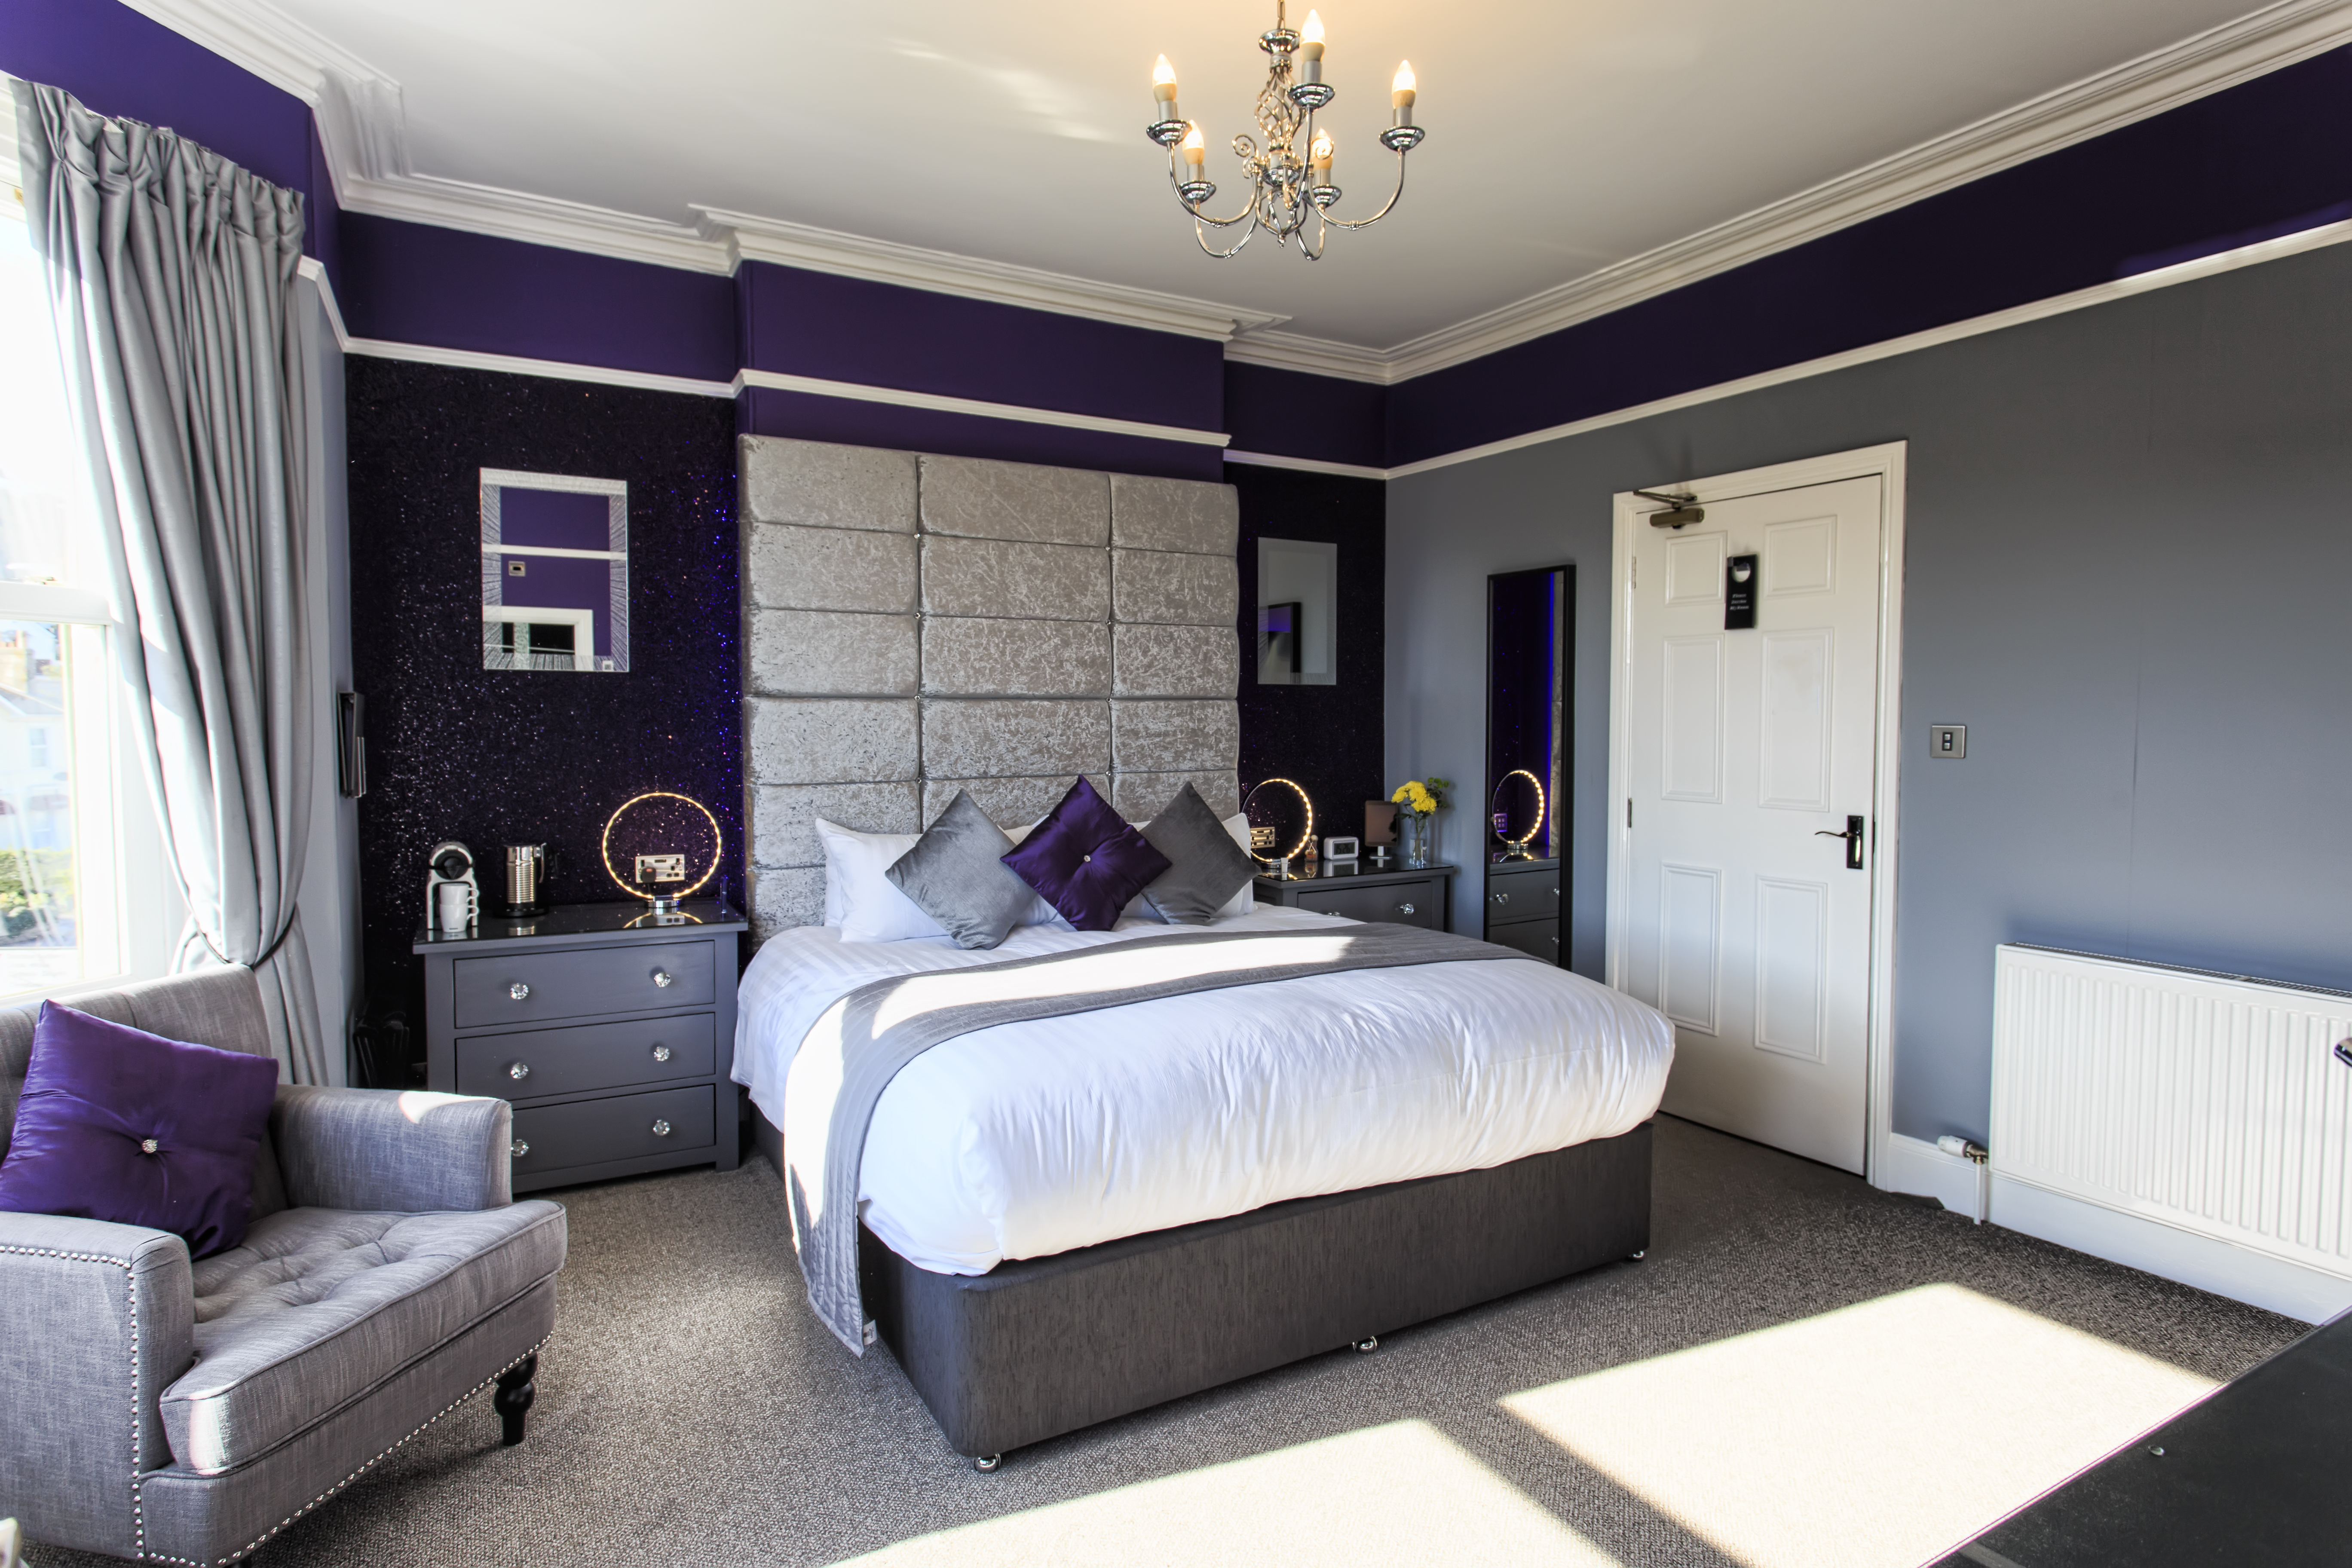 The B&B features six bedrooms (TripAdvisor/PA)